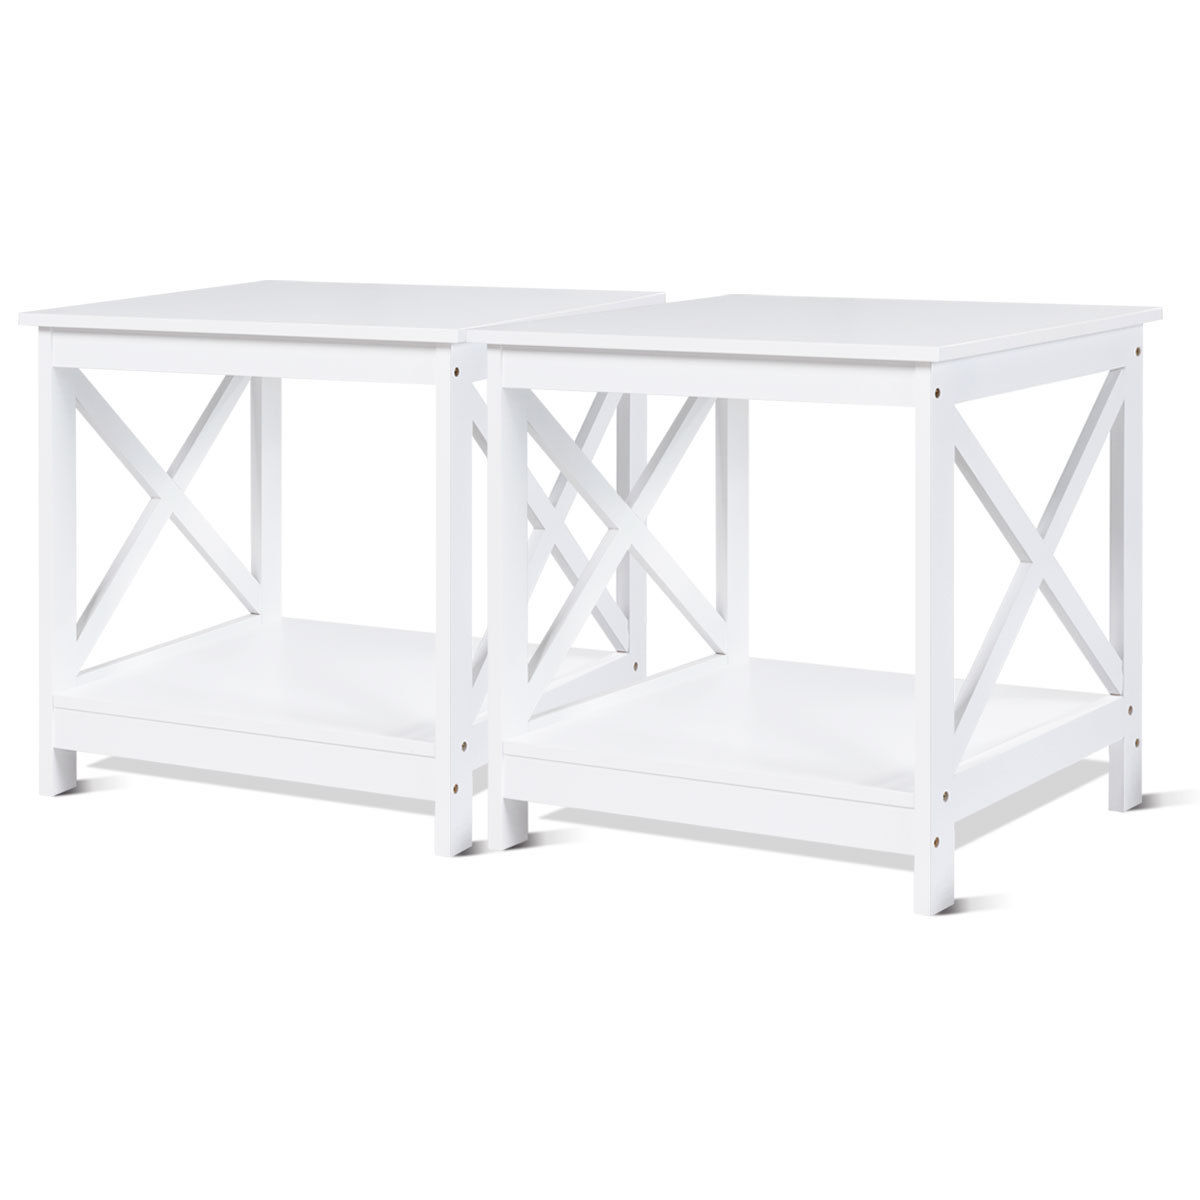 way pcs end table design display shelves accent white side sofa nightstand big ott inch lamps for living room modern acrylic coffee italian building barn door unique wall clocks